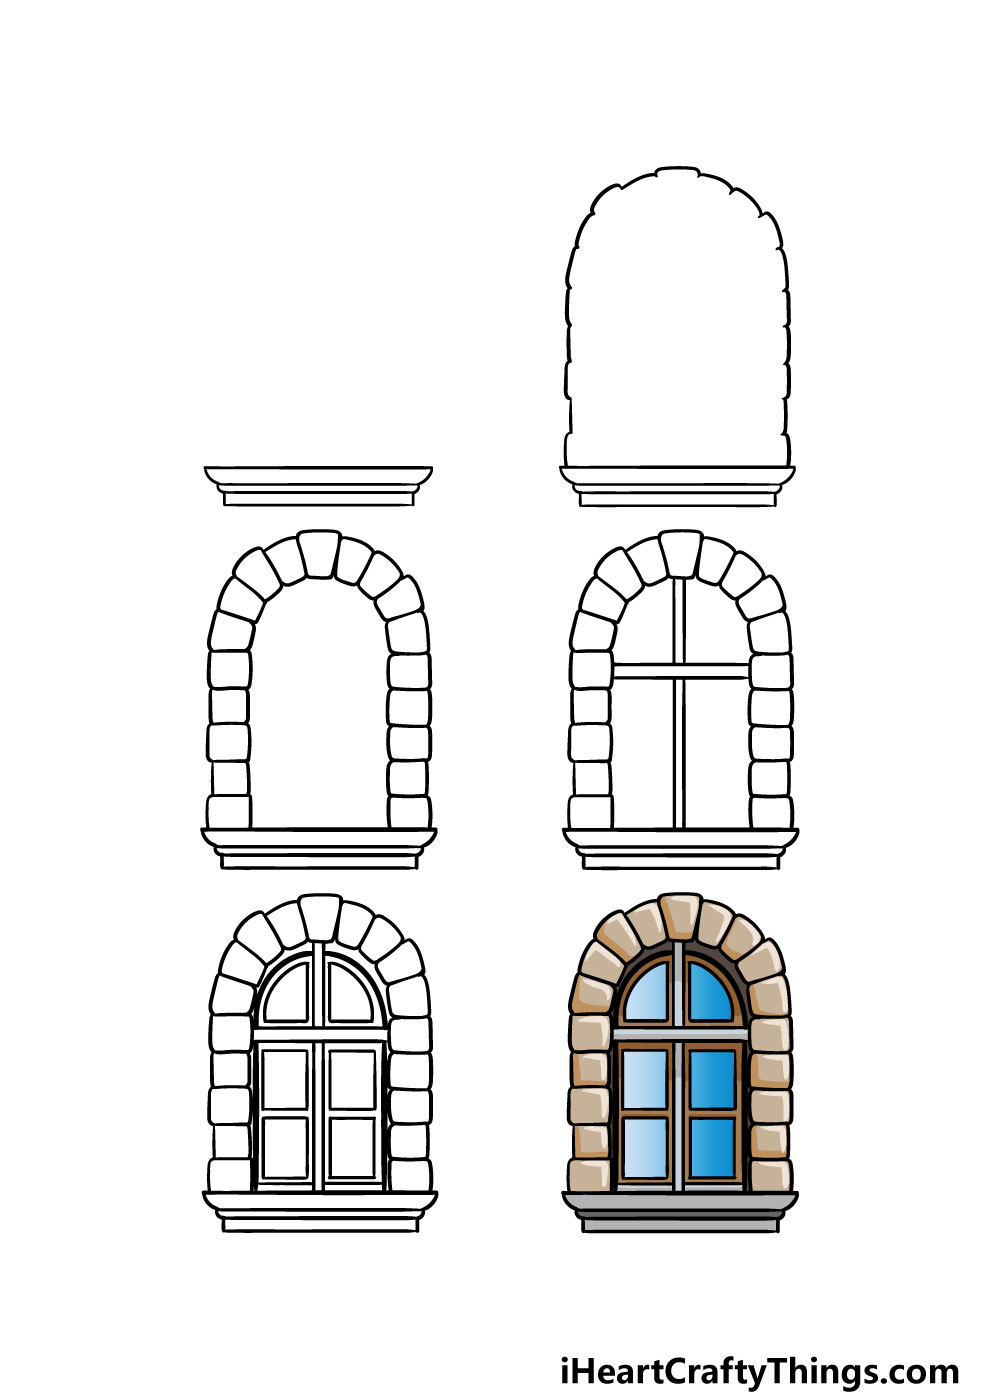 how to draw a window in 6 steps